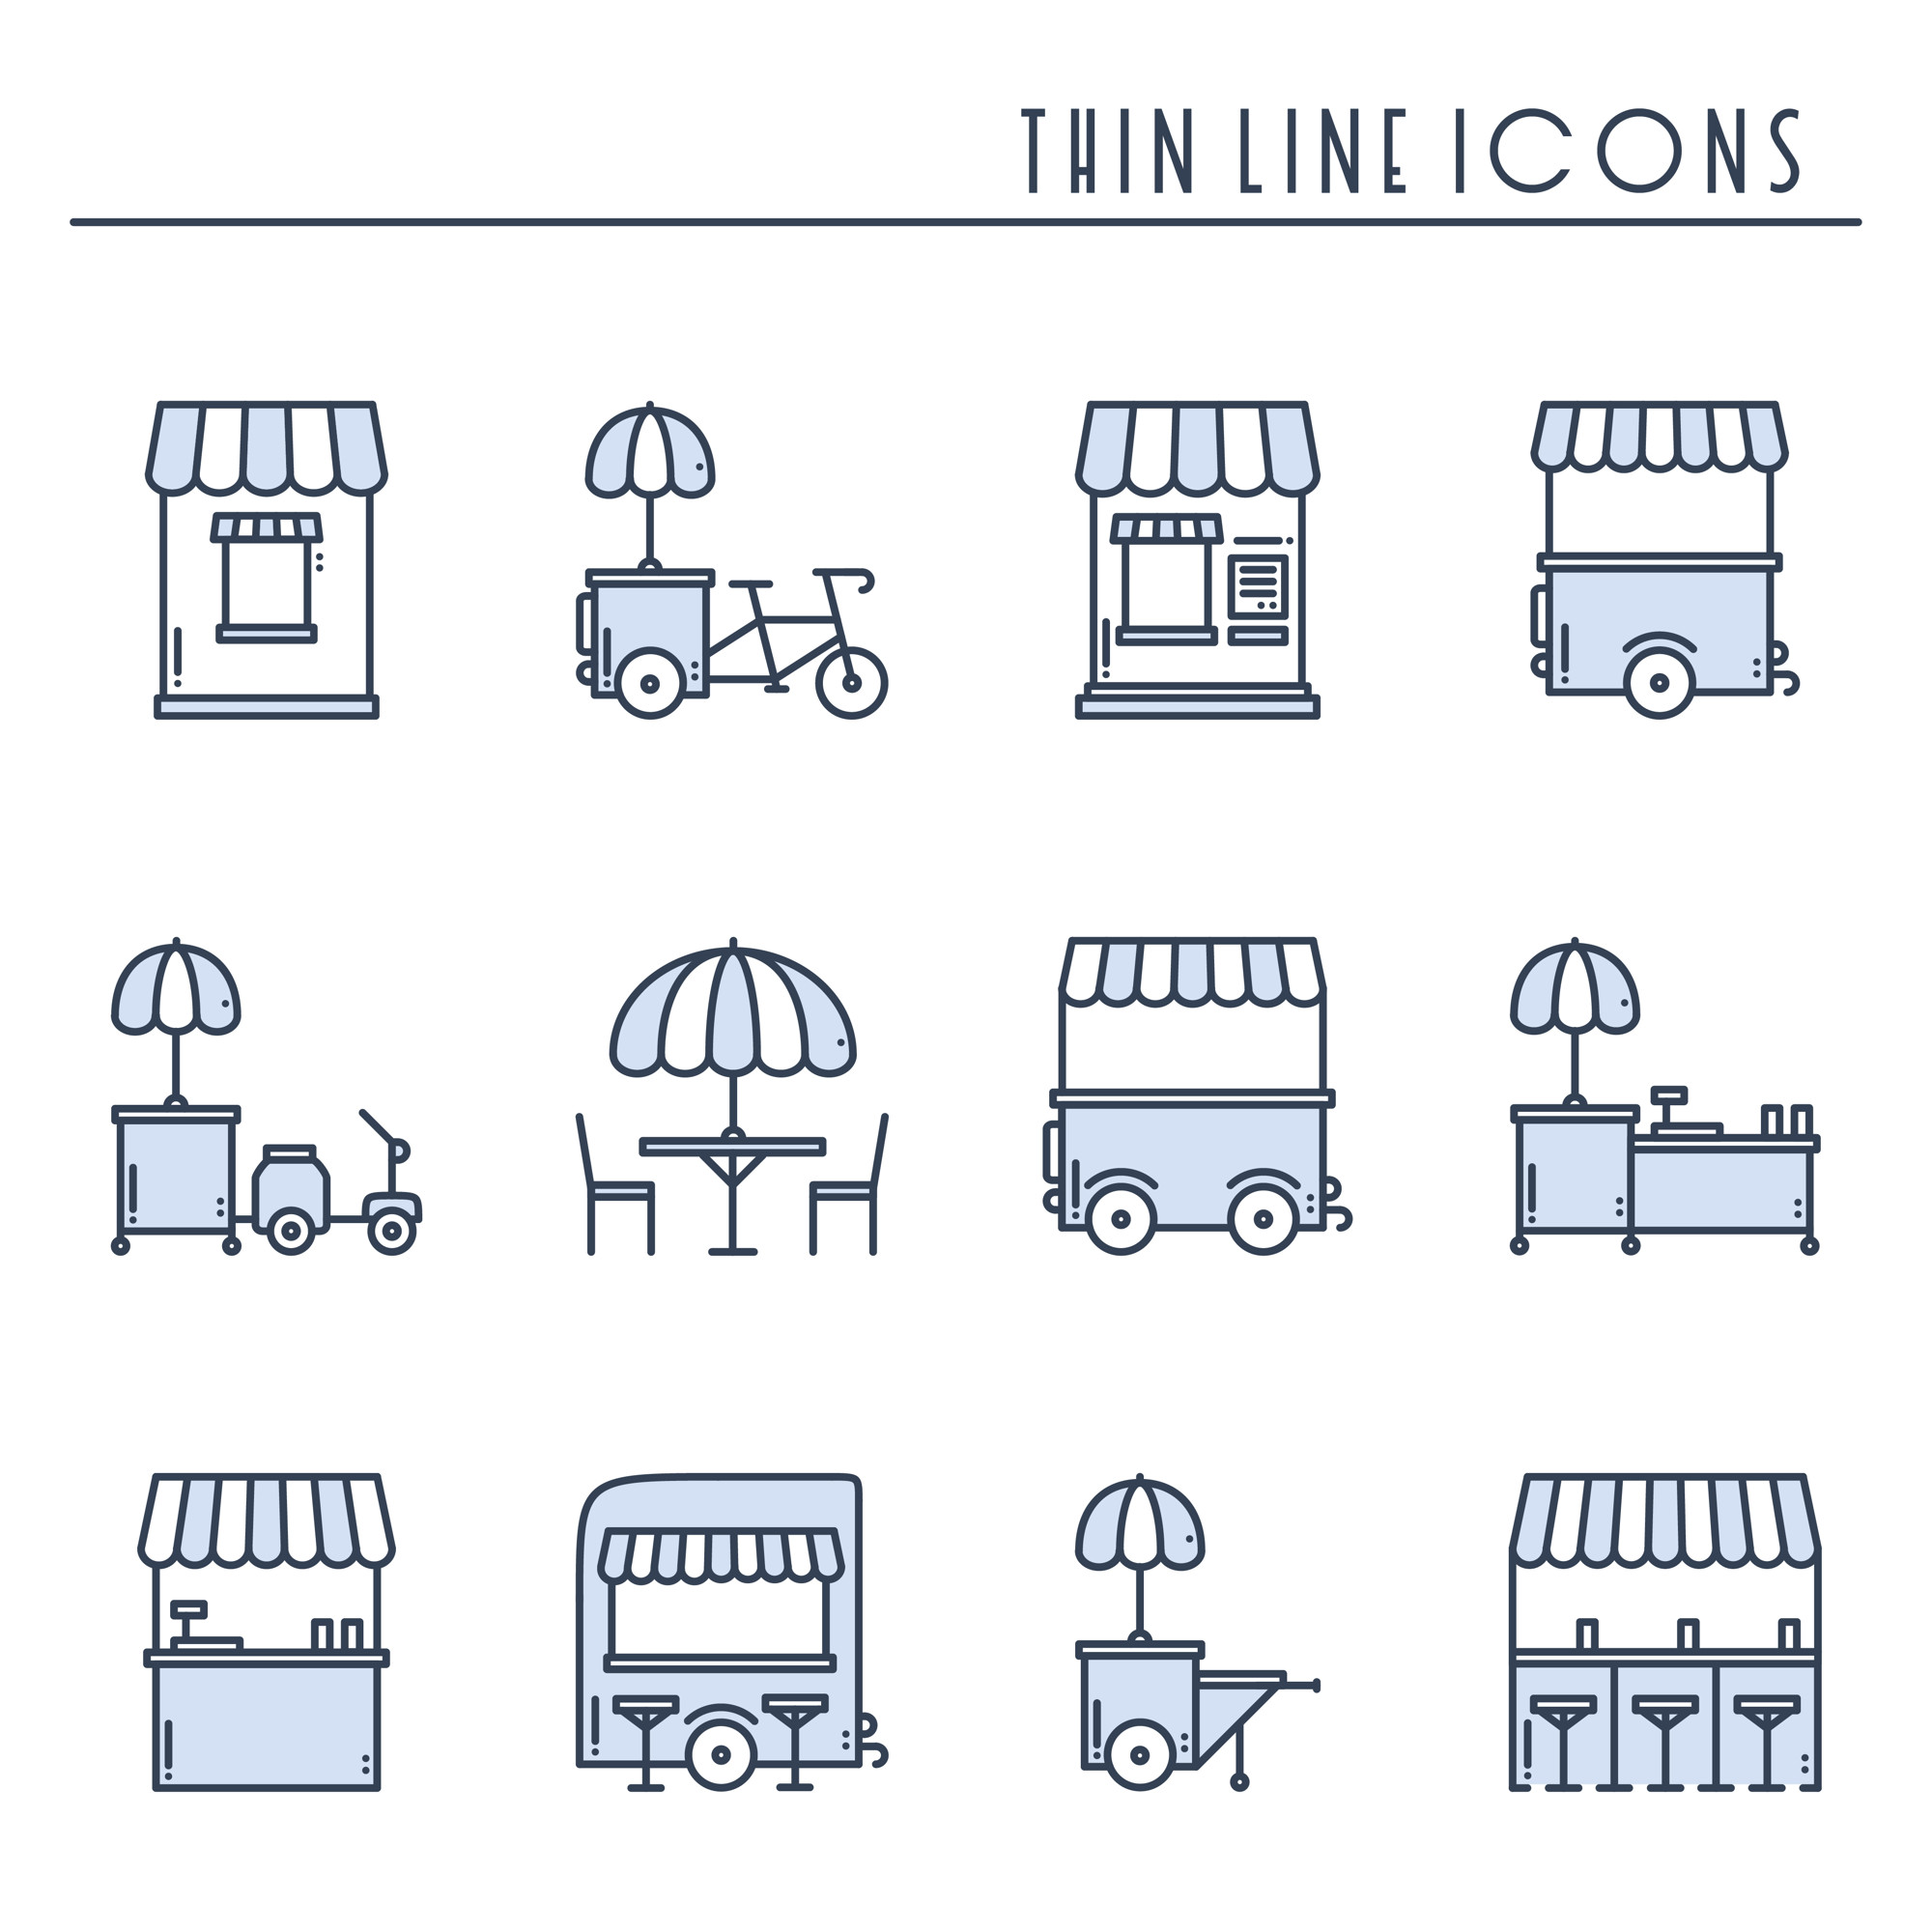 Street food retail icons. Food truck, kiosk, trolley, wheel market stall, mobile cafe